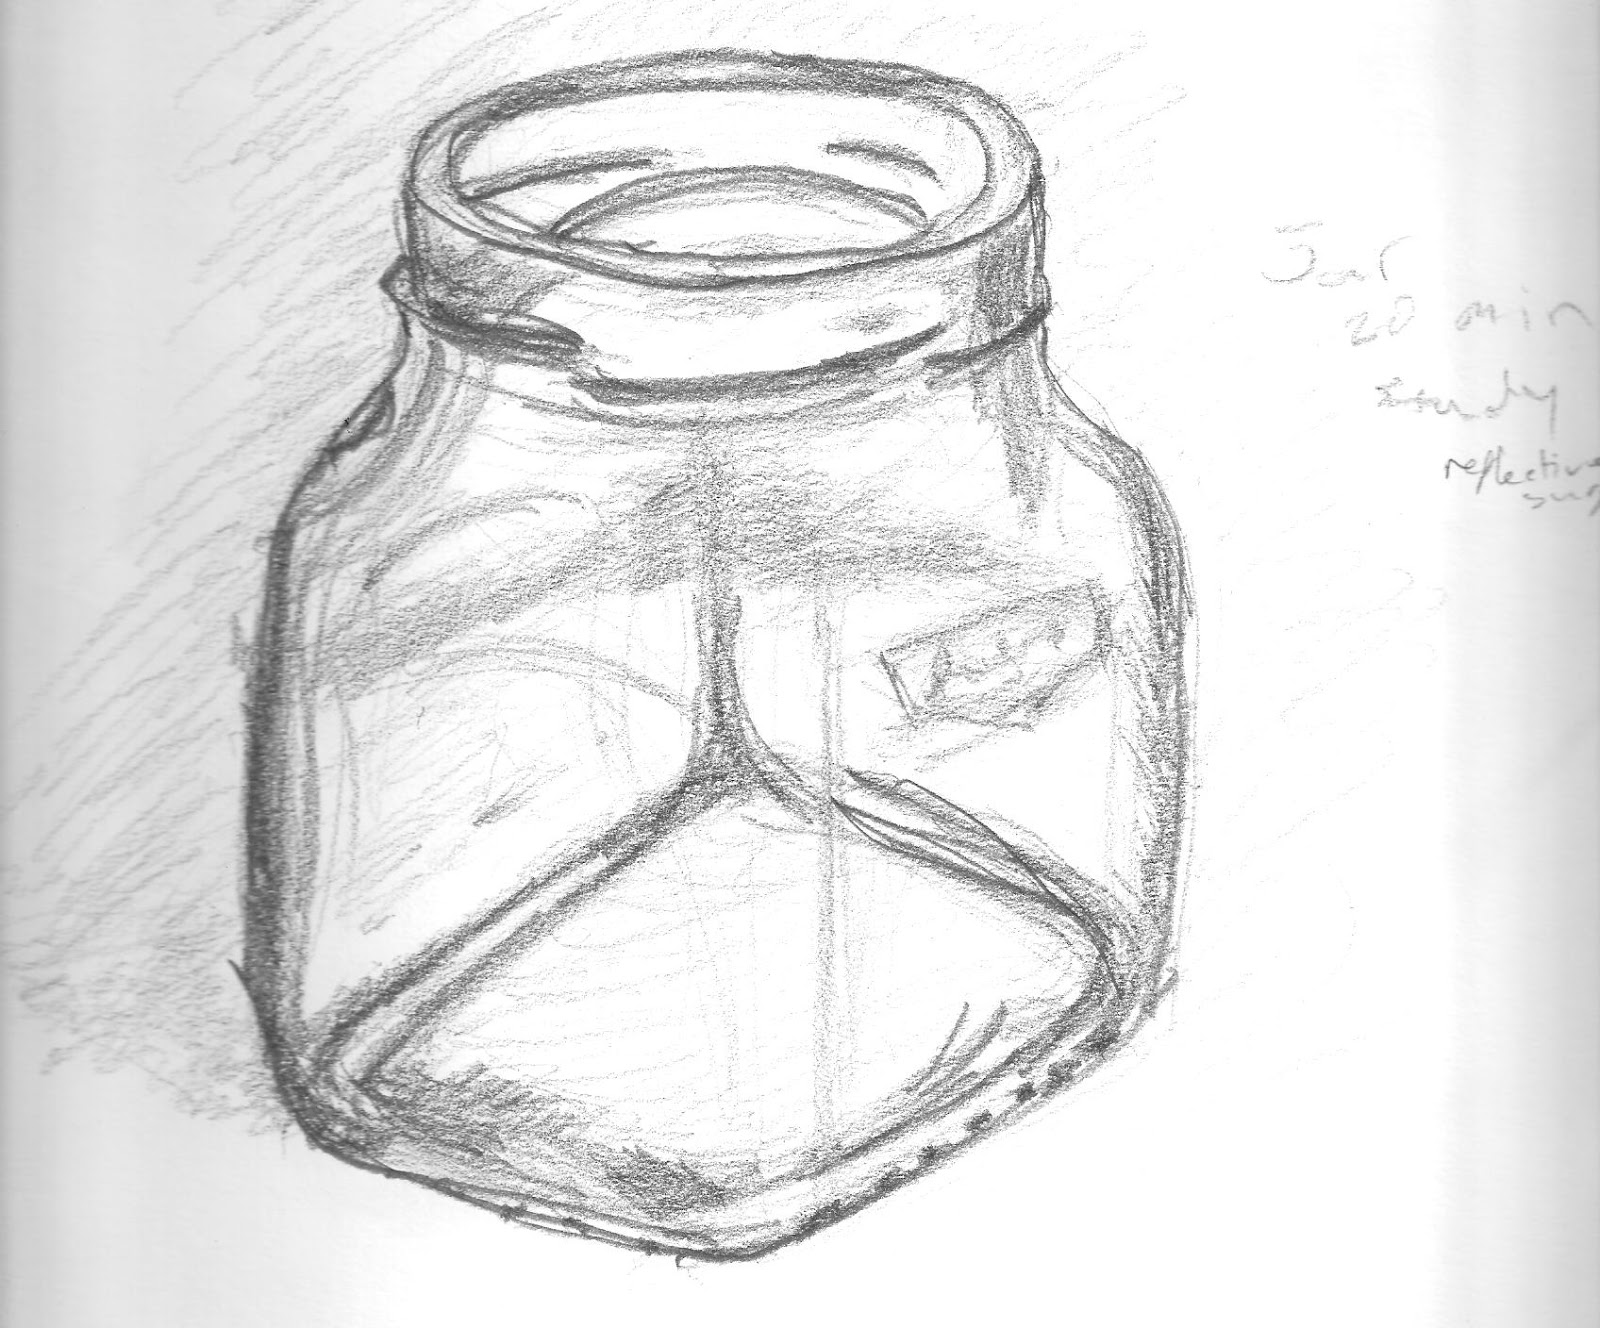 Scribble Drawing Of Objects : Maximilian tsujino od week soft and hard surfaces